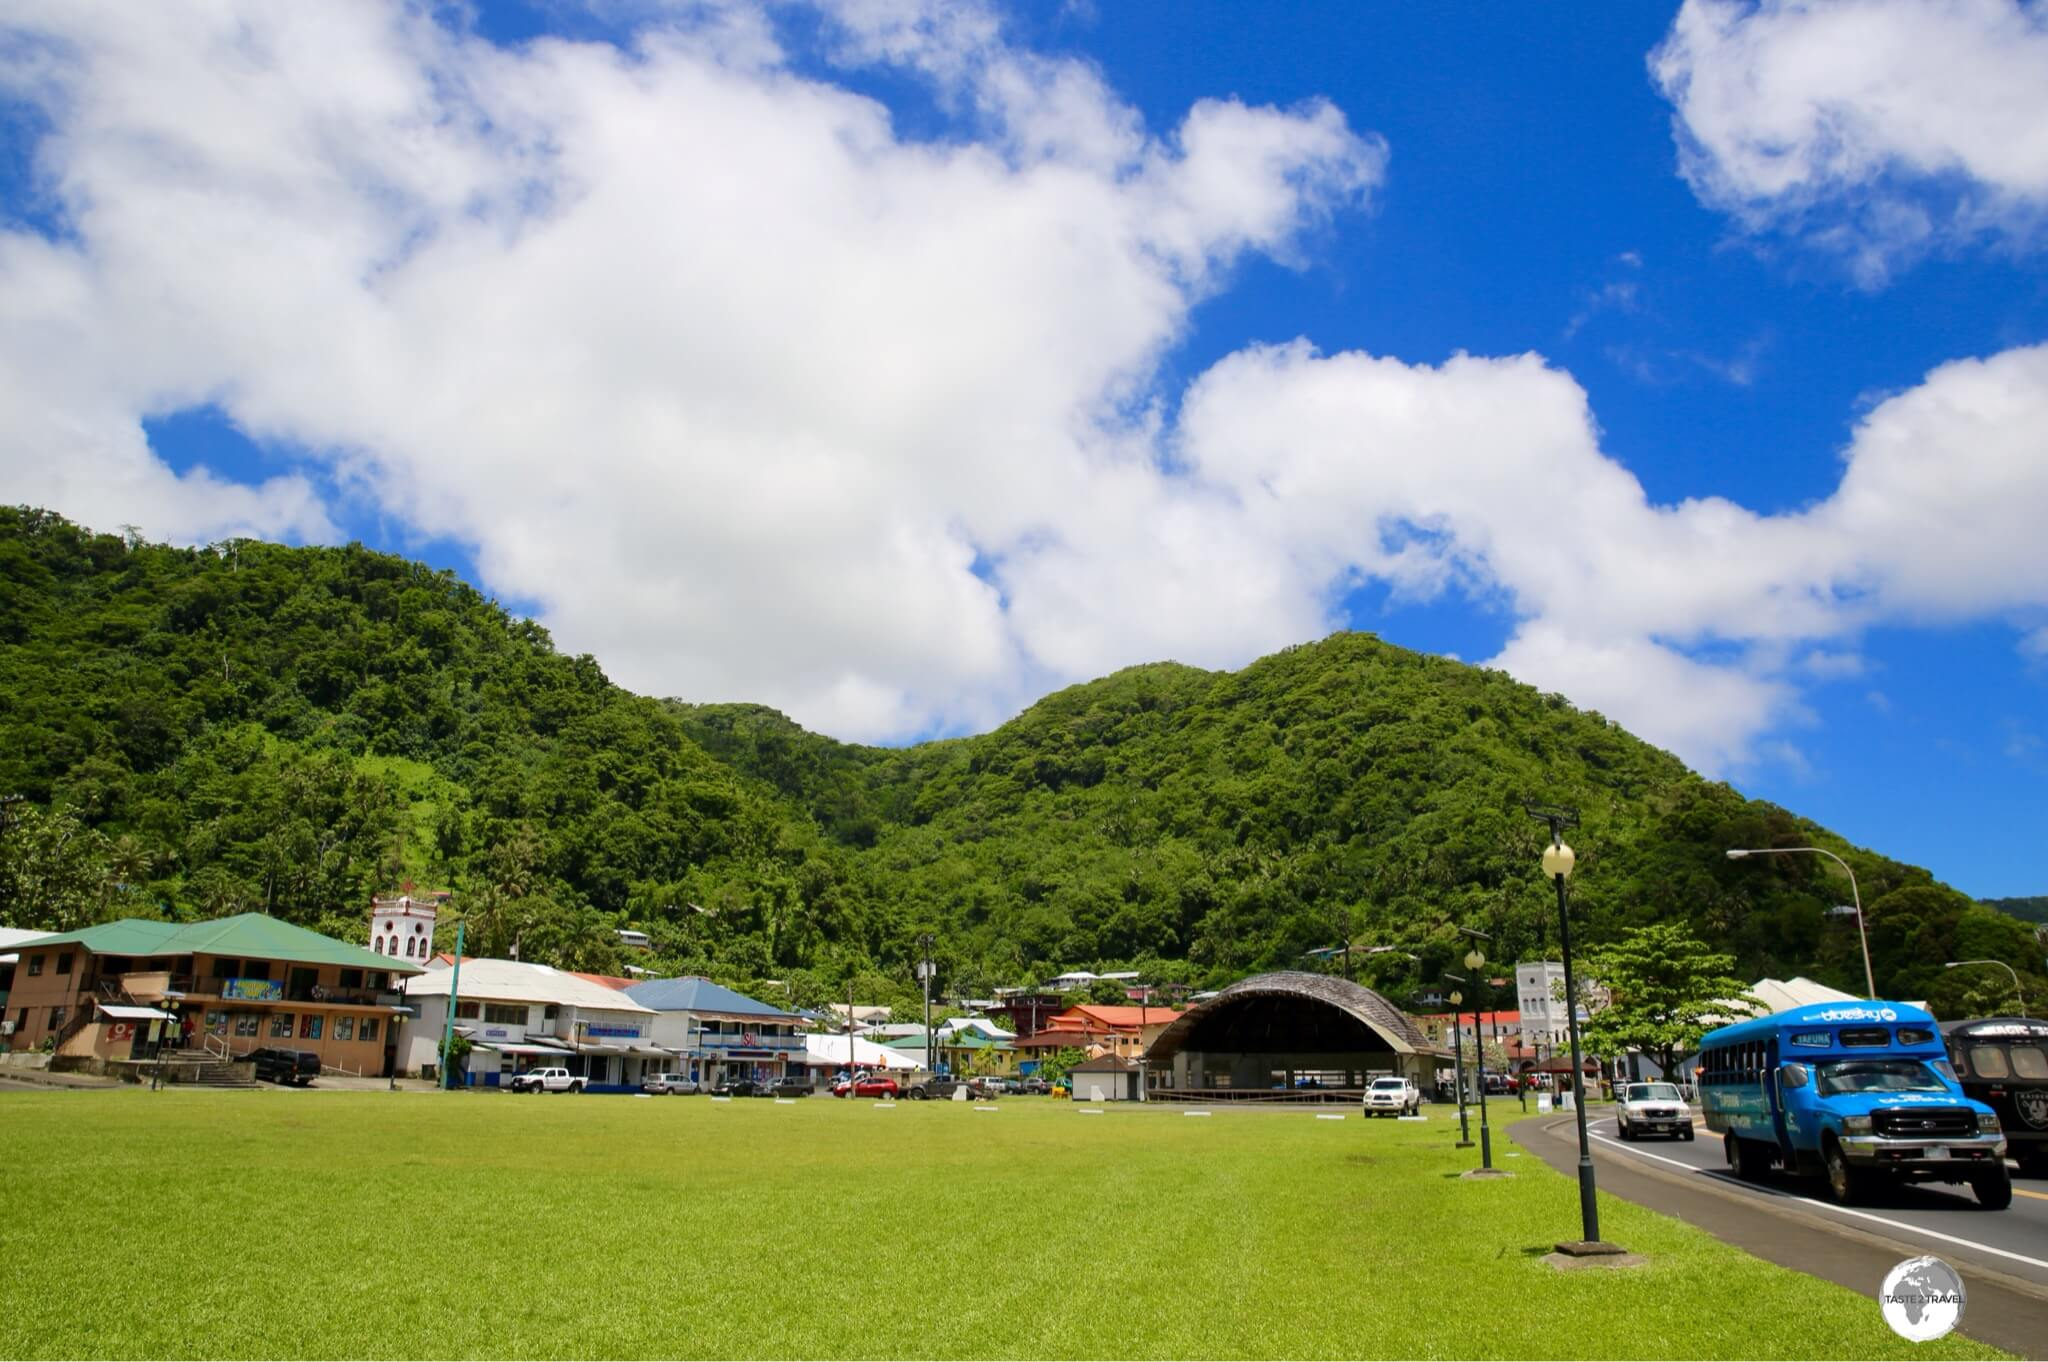 Downtown Pago Pago, the sleepy capital of American Samoa.